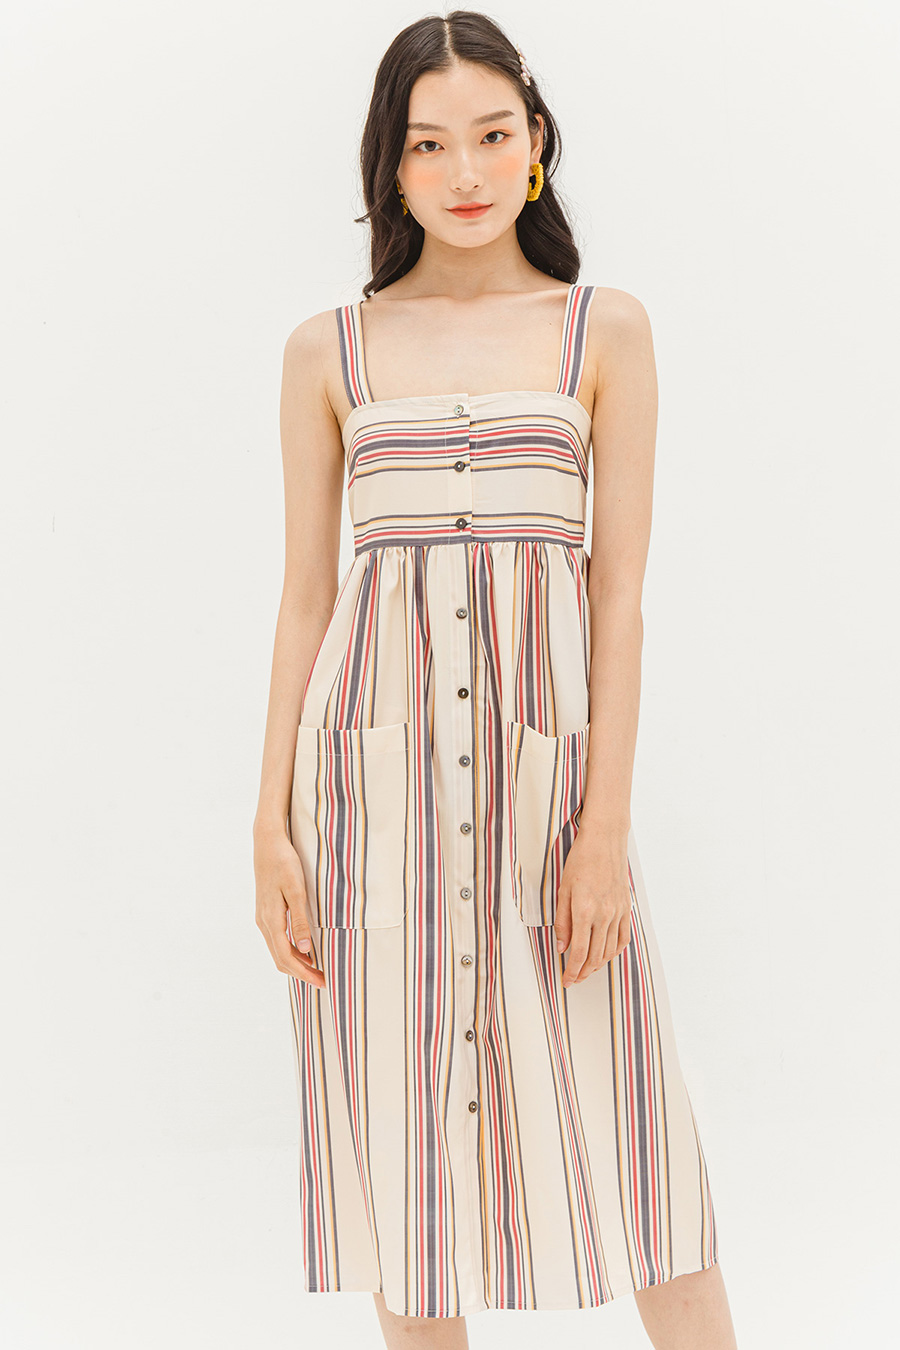 LENA DRESS - PEPE STRIPE